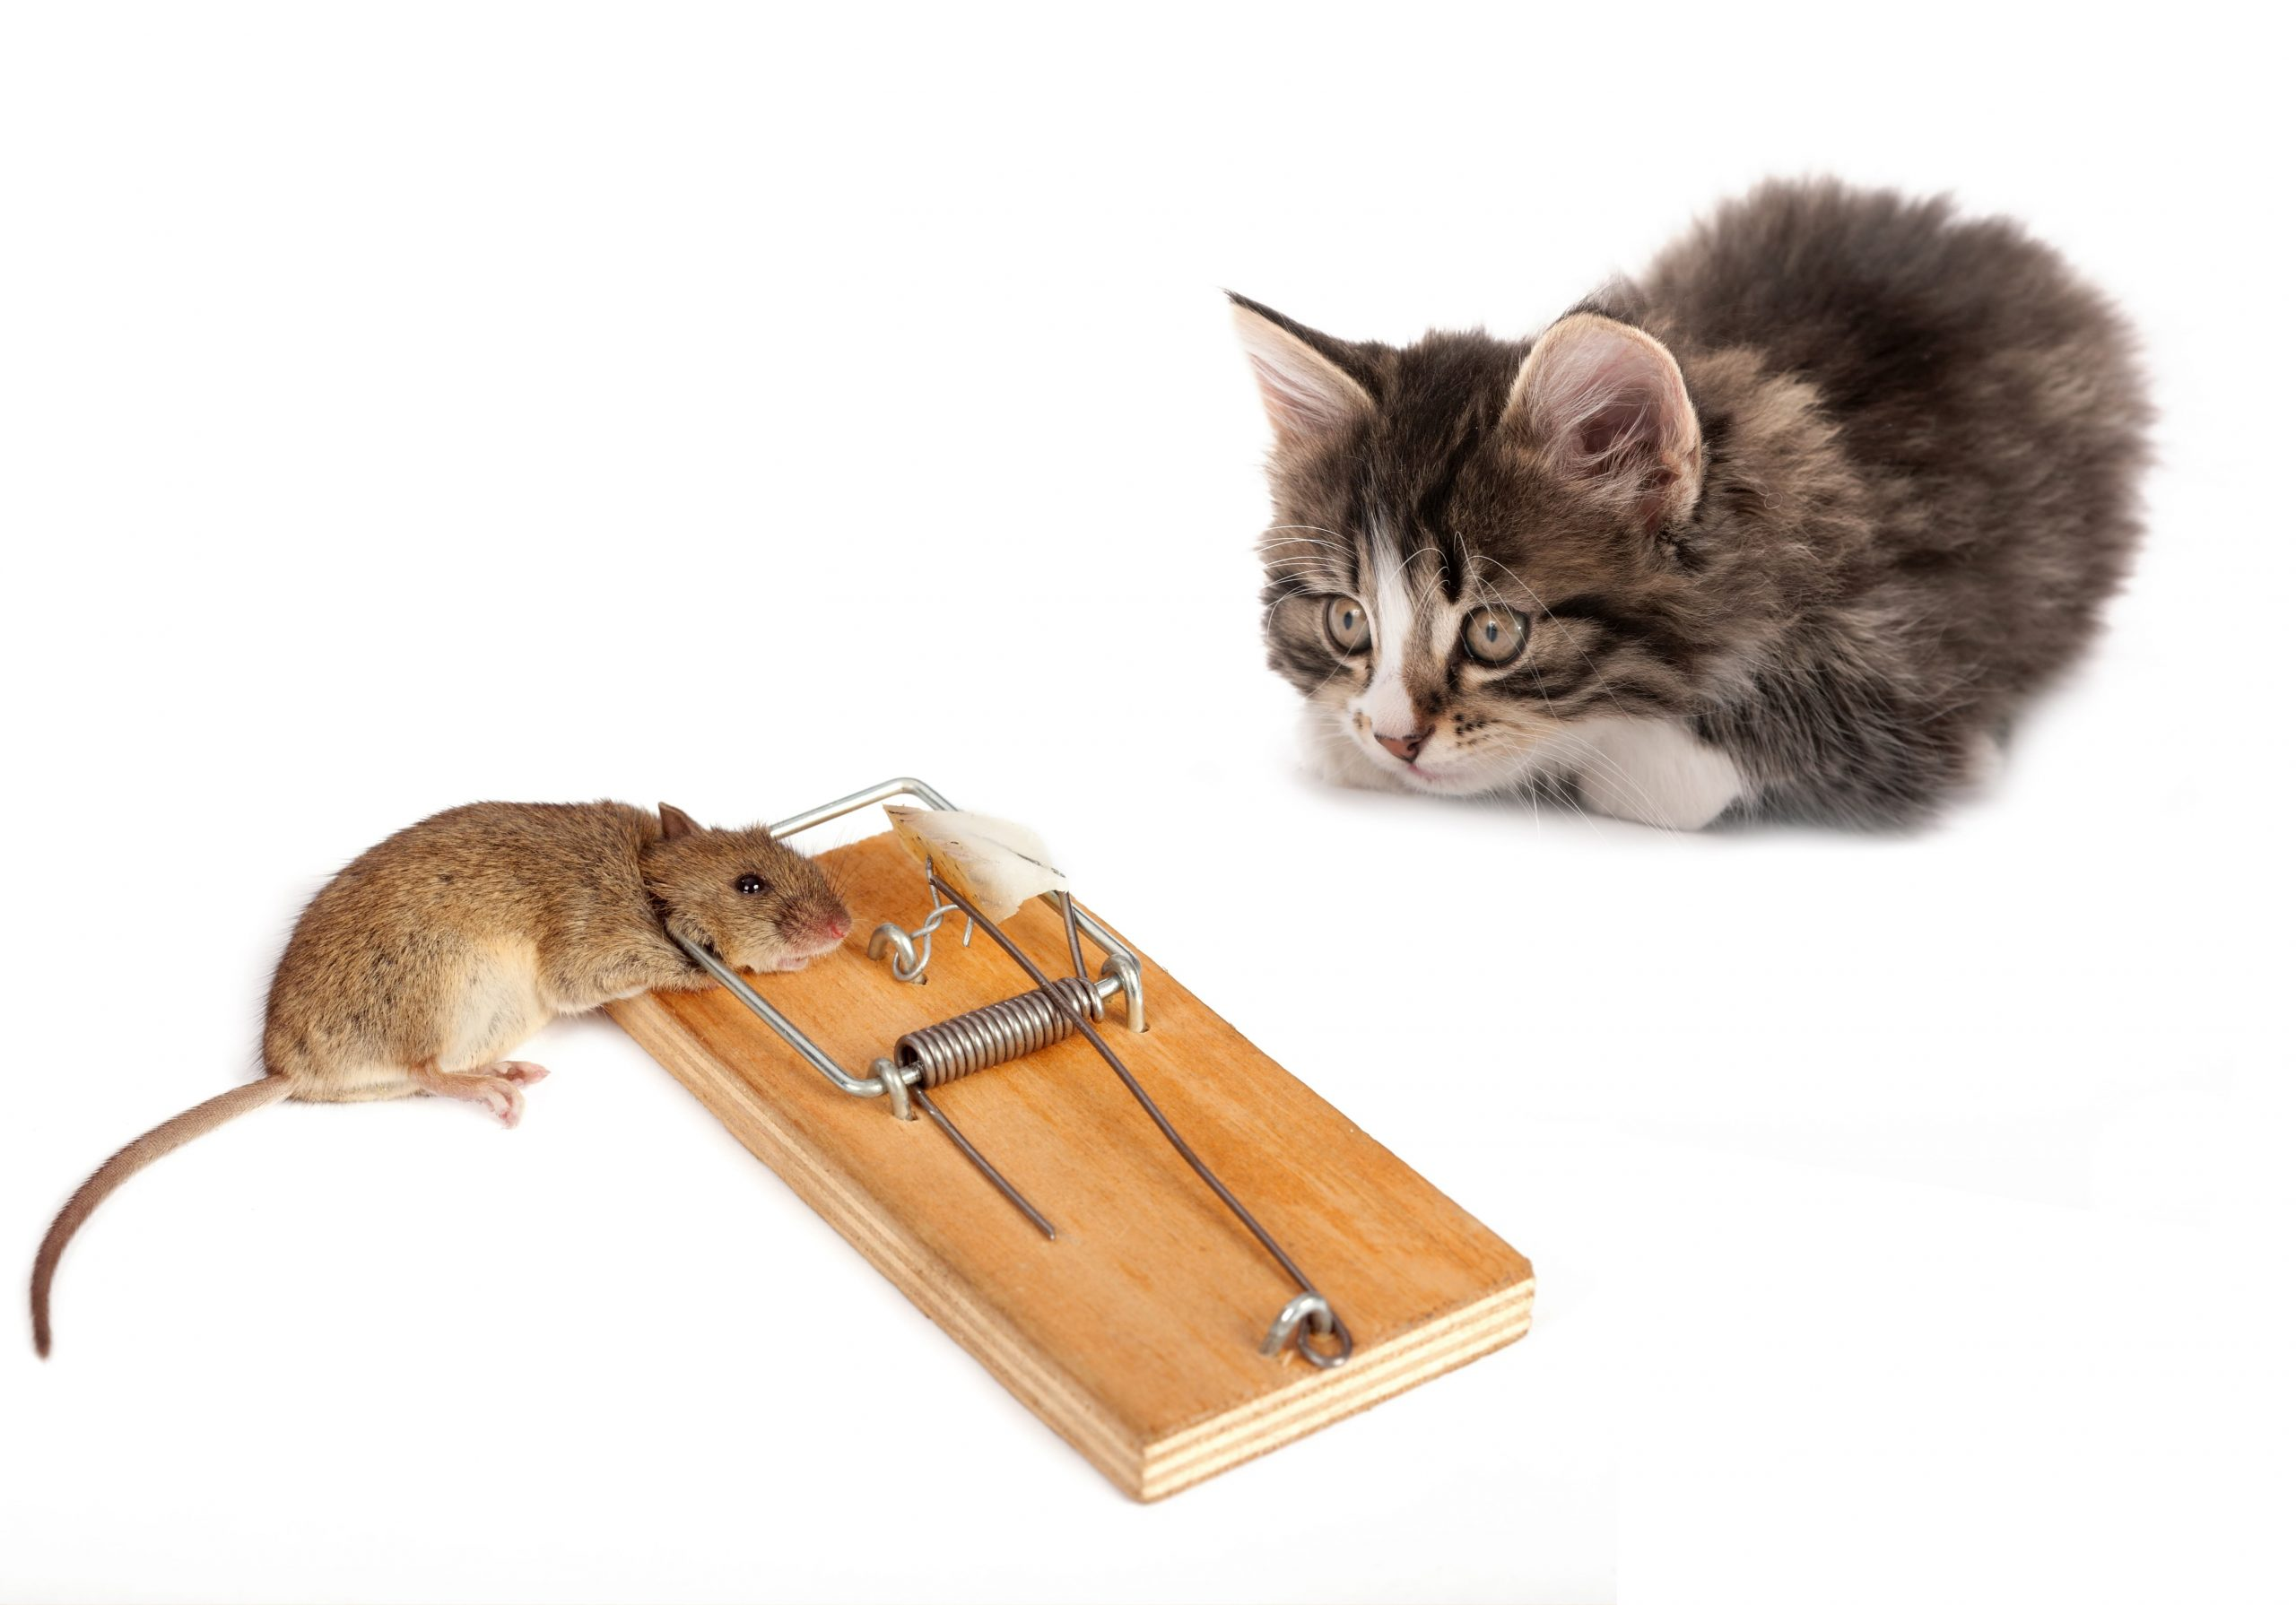 How to Use Mouse Traps Safely with Children or Pets